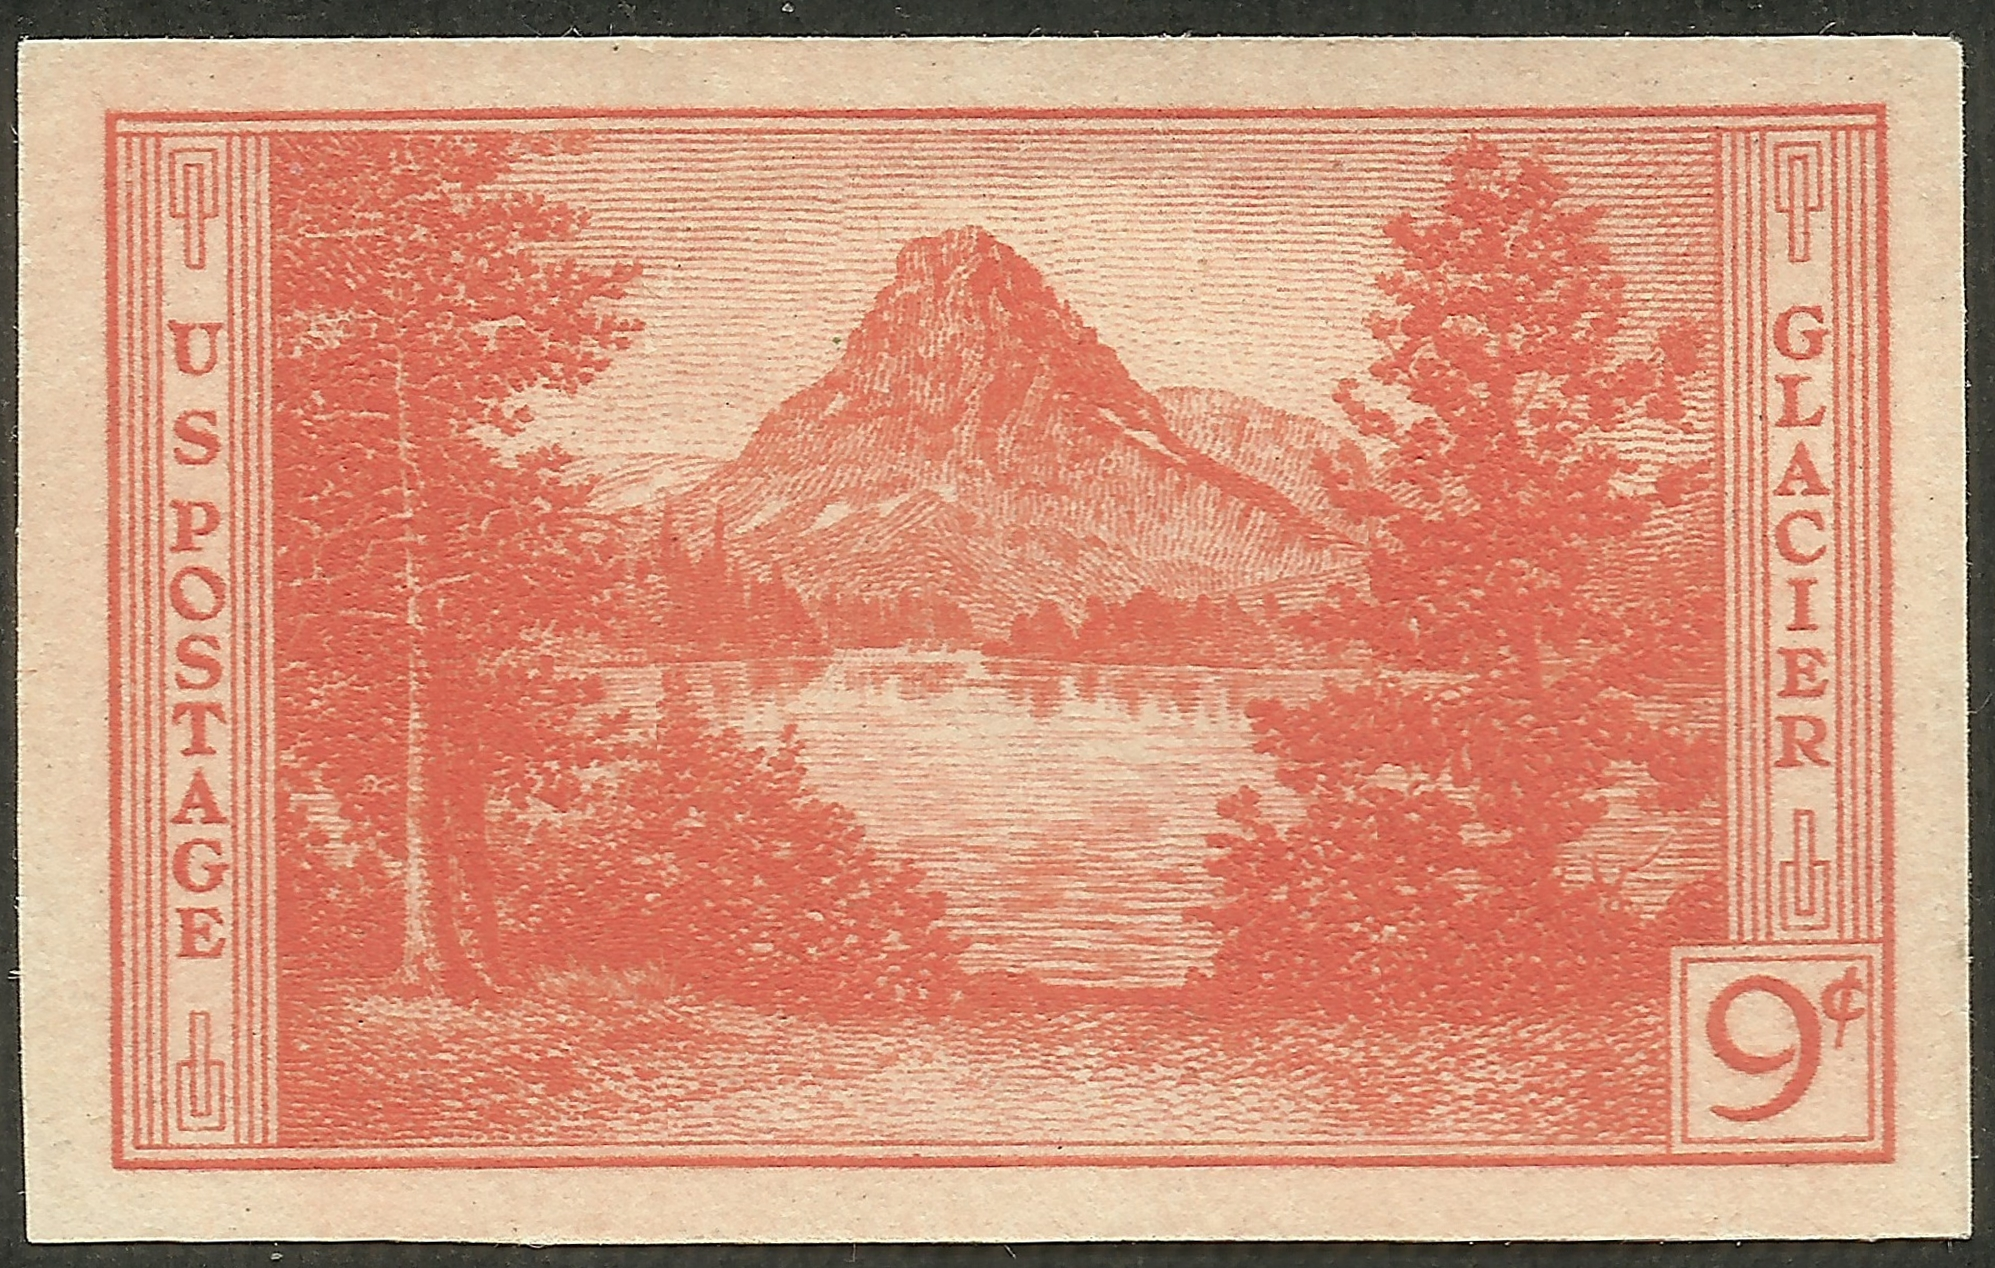 United States - Scott #764 (1935) imperforate and no gum, as issued